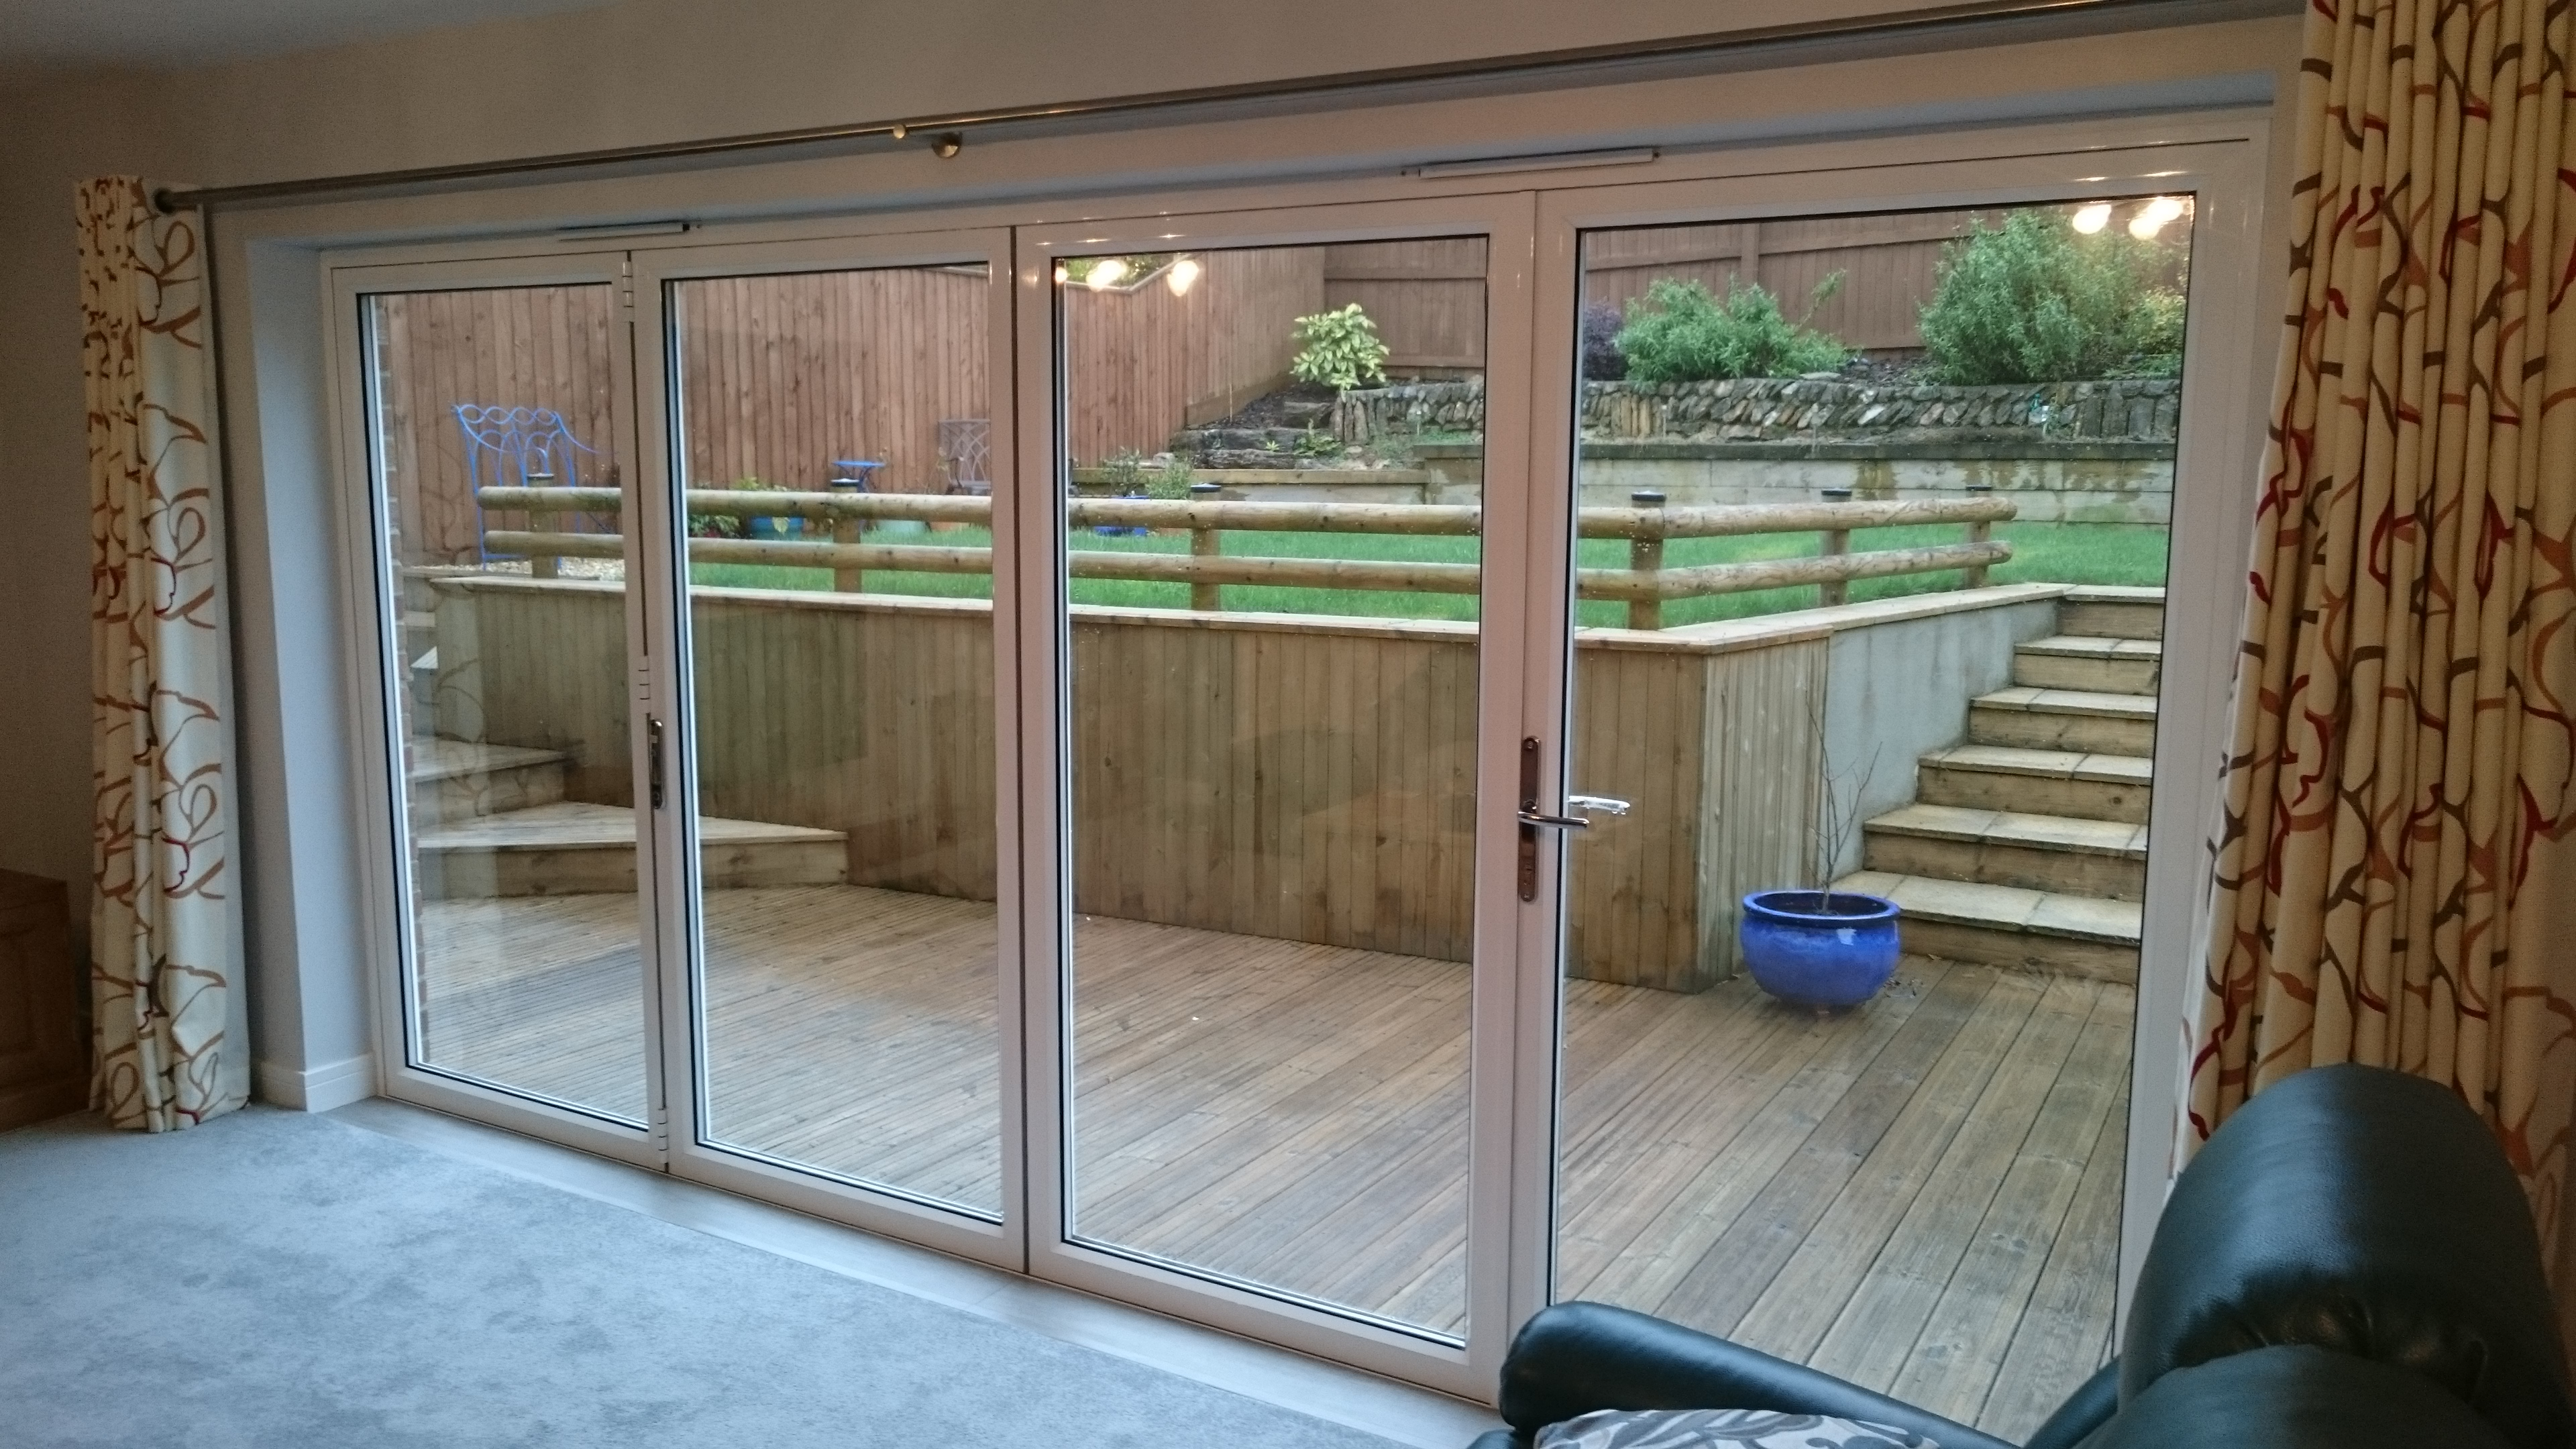 Natural 50 solar window film applied to bi-fold doors in Plymouth Devon by Tinting Express